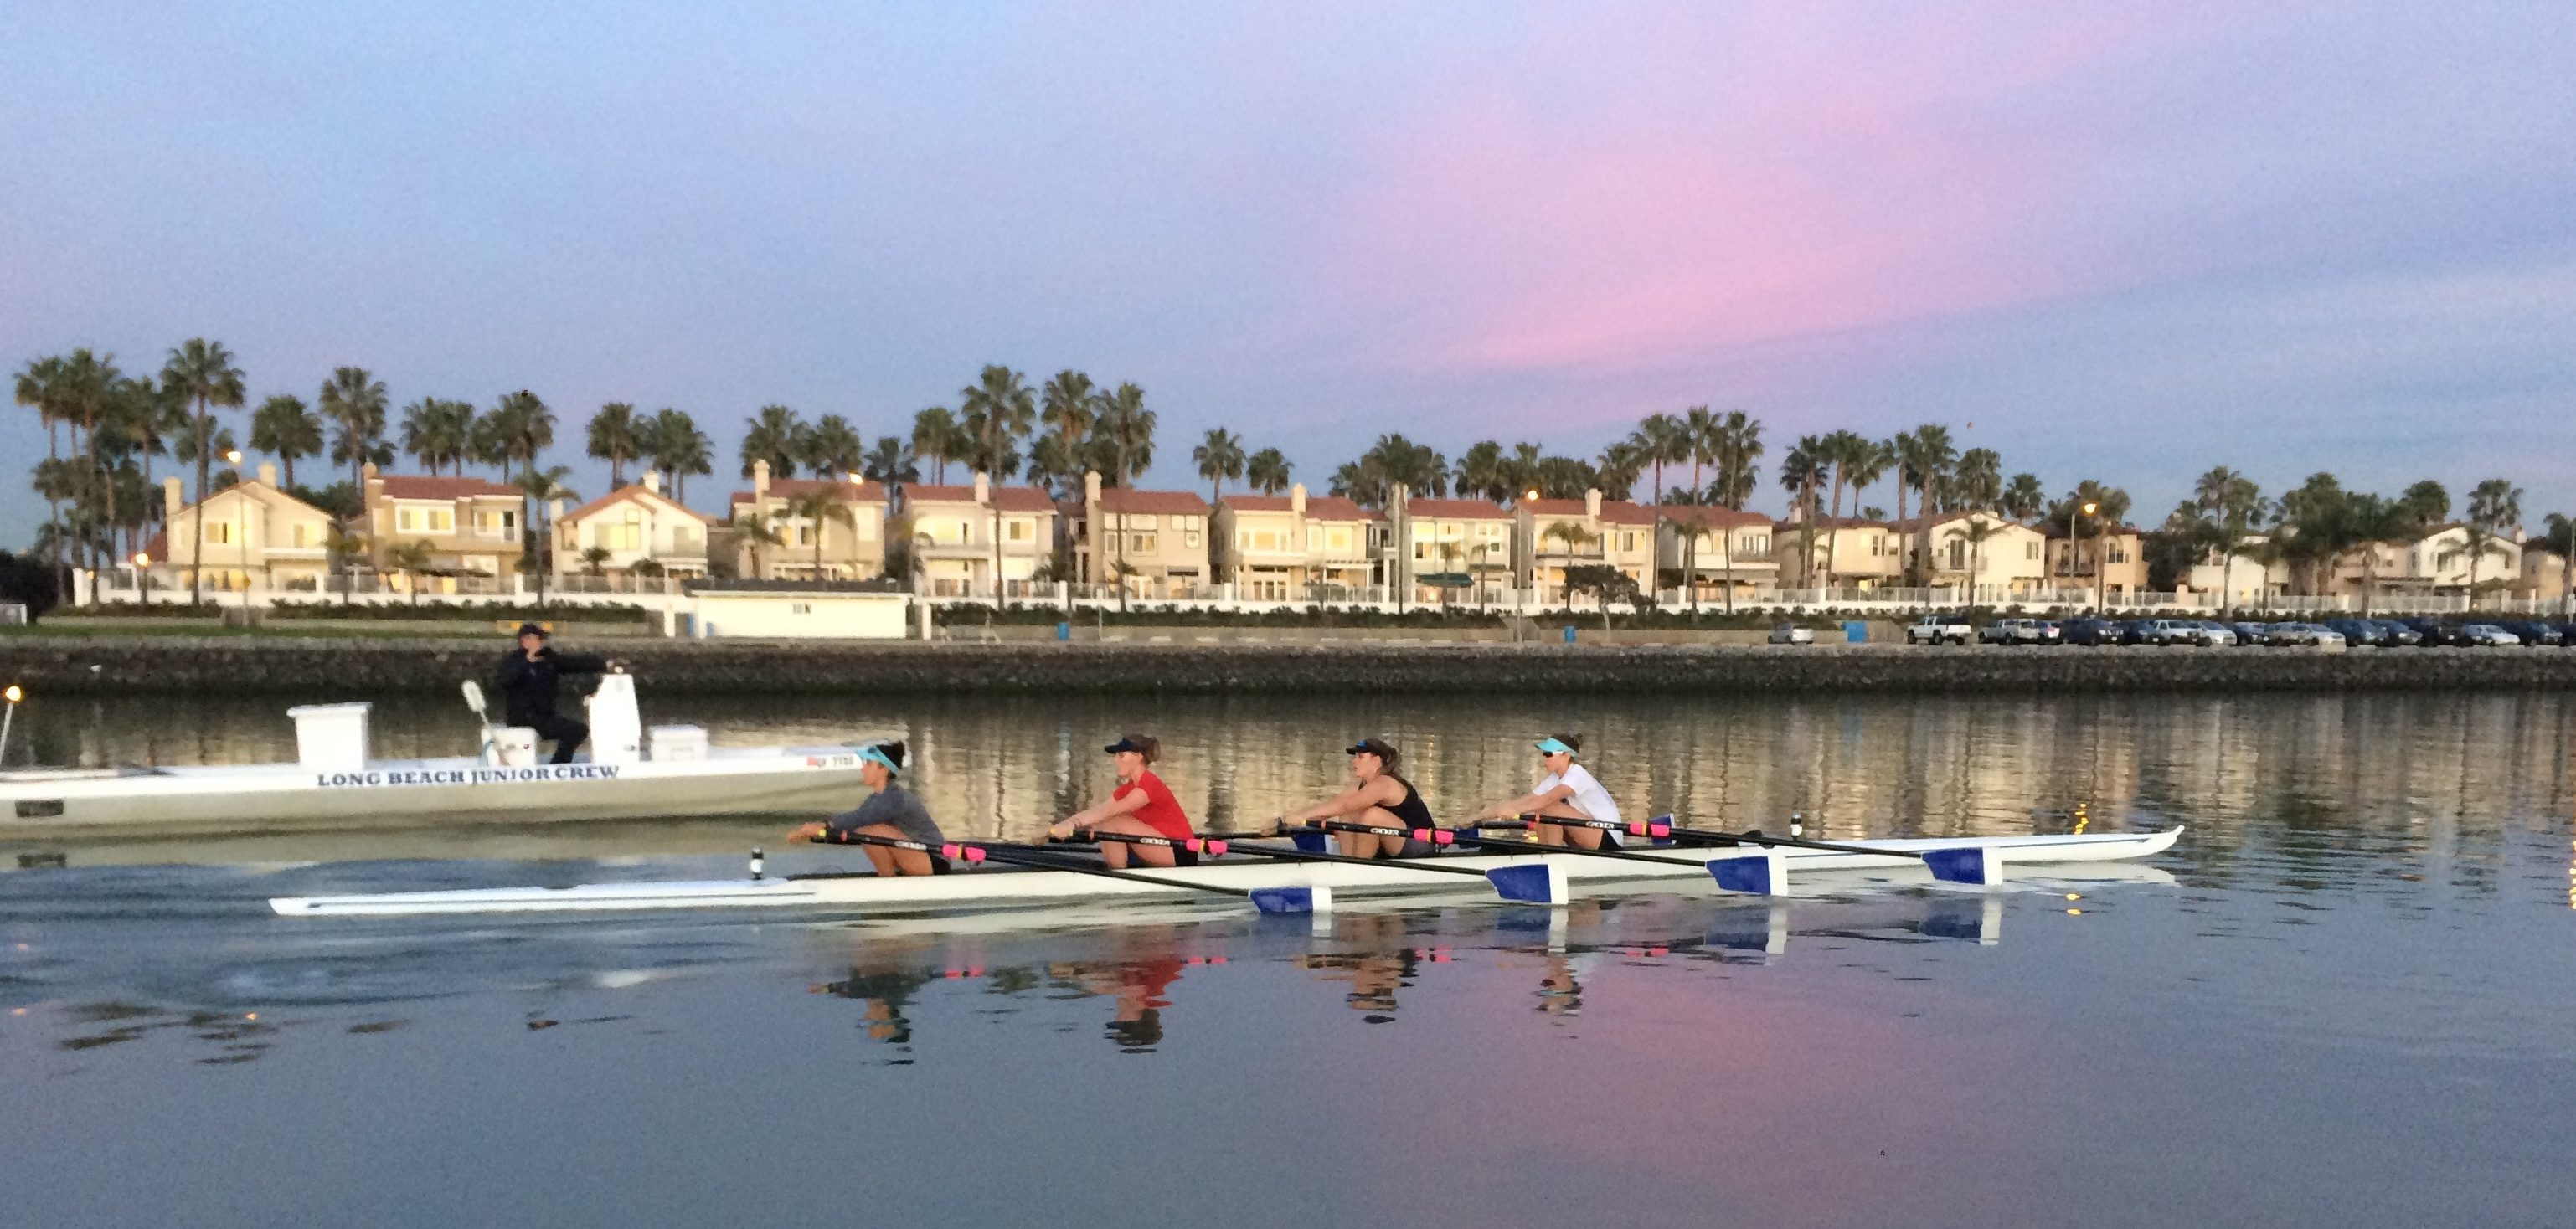 Long Beach Junior Crew Competitive Rowing Team Producing Jr National And Jr World Champions Page 2